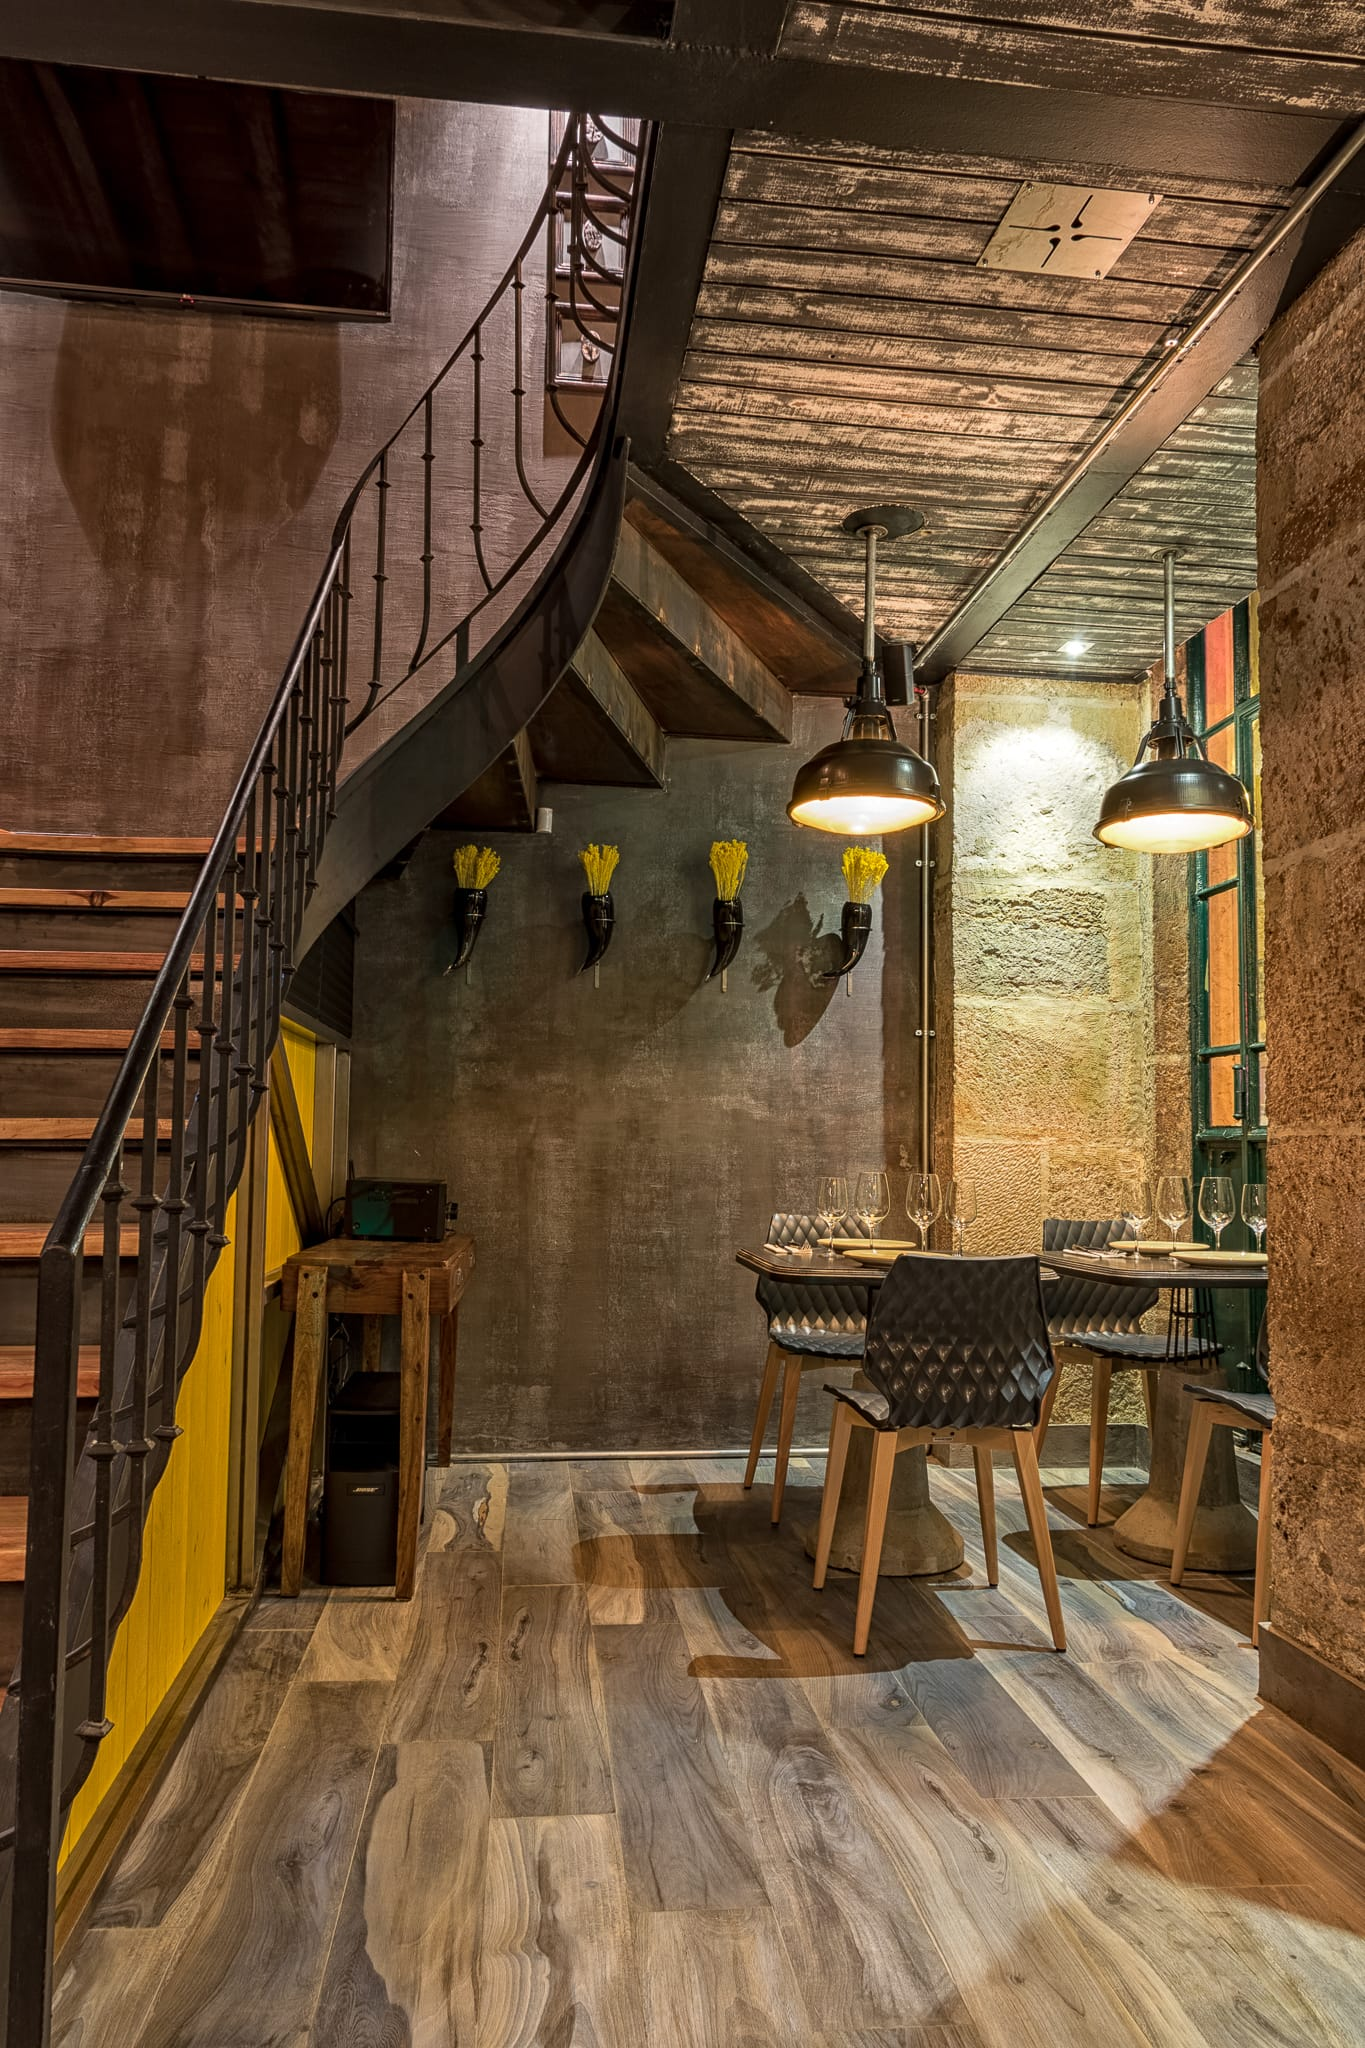 Ресторан Coffee Grill в историческом центре Лиссабона, HQ architecture, HQarch, HQ arch, high quality architecture